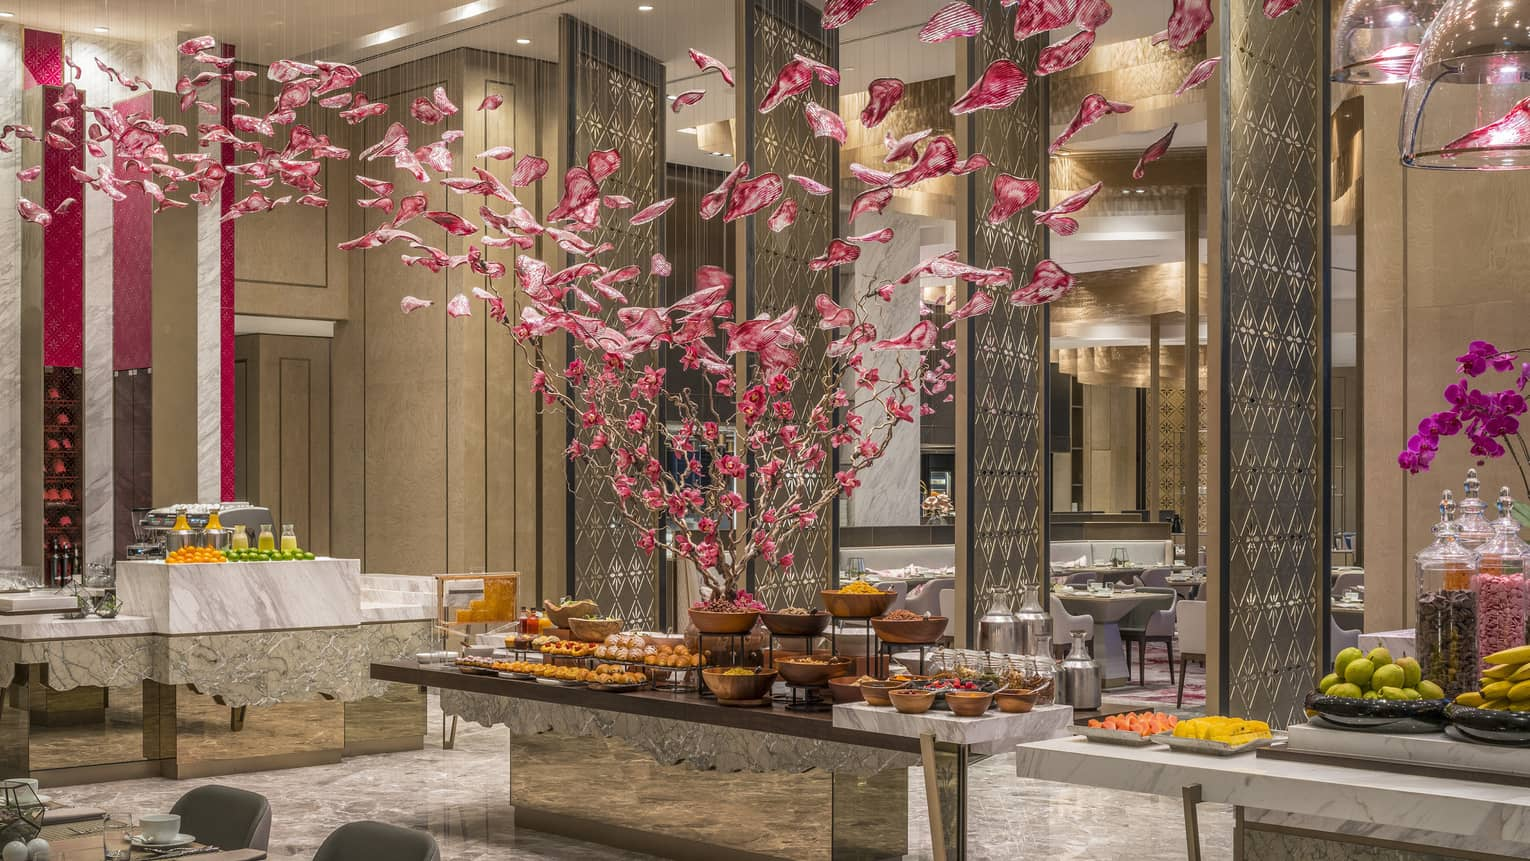 Curate buffet with floral arrangement